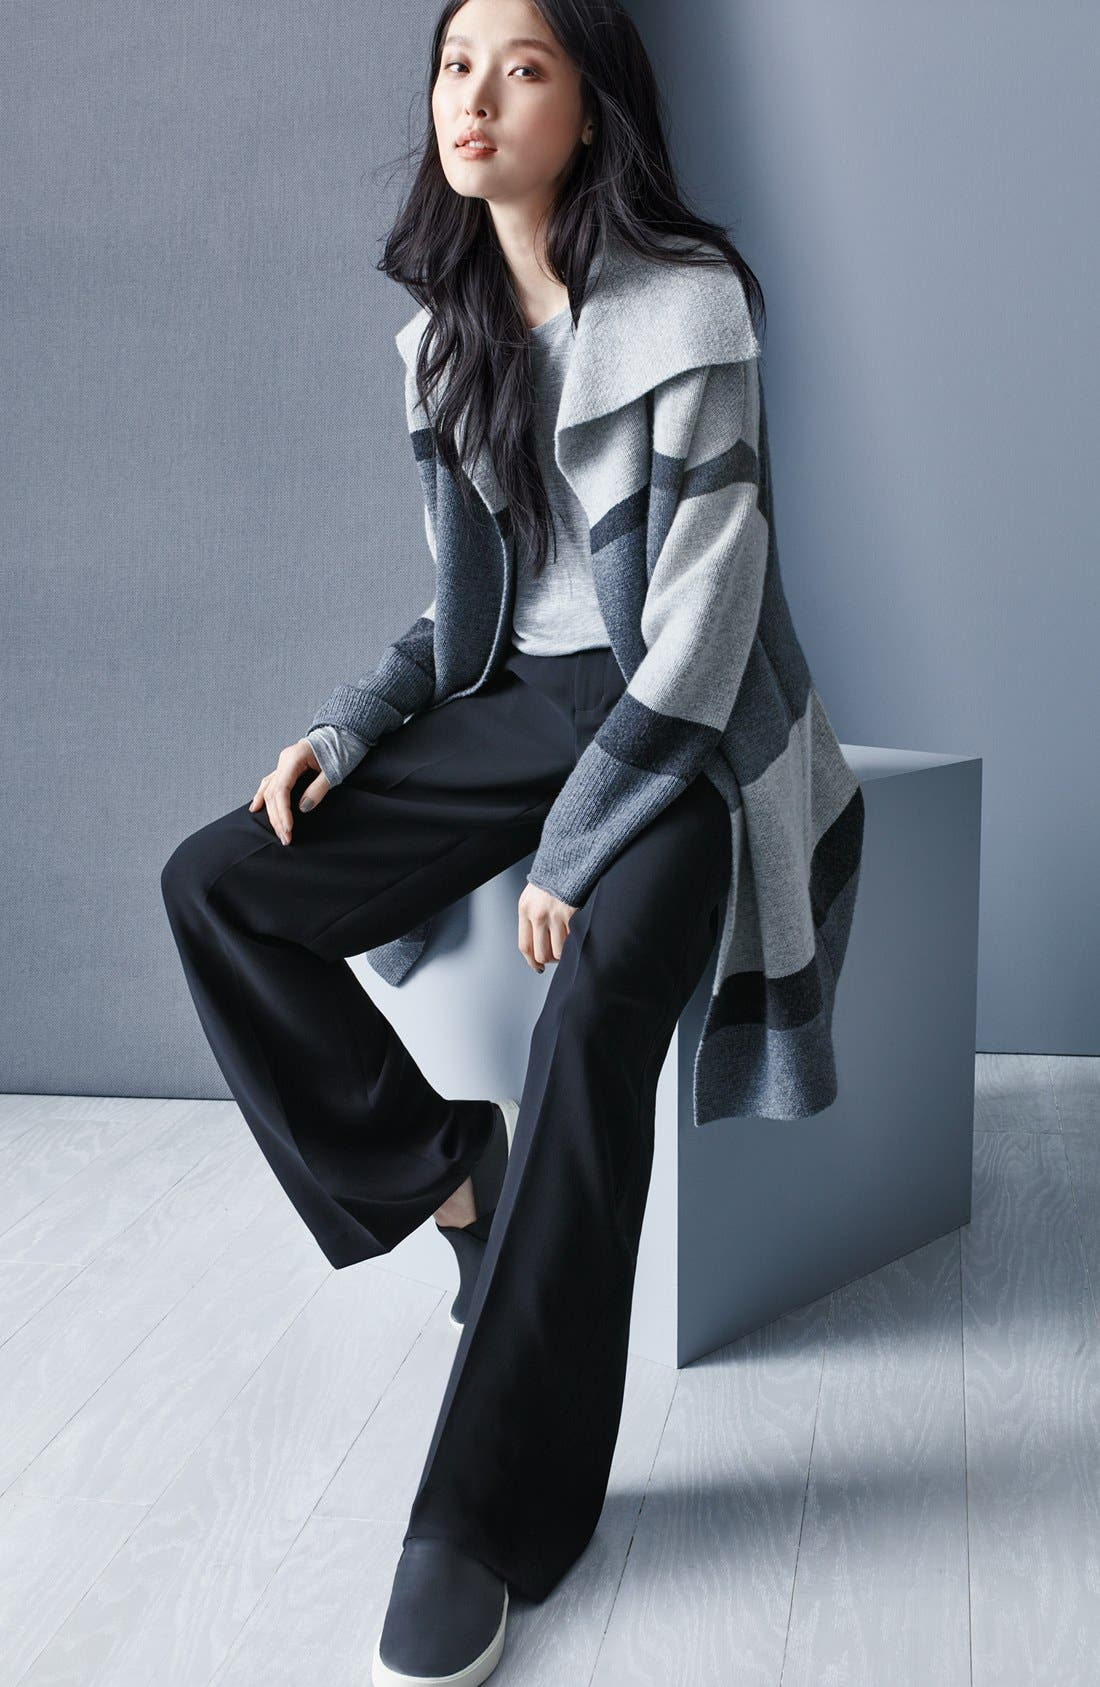 Colorblock Wool & Cashmere Knit Car Coat,                             Alternate thumbnail 8, color,                             Heather Steal/ Stone/ Carbon